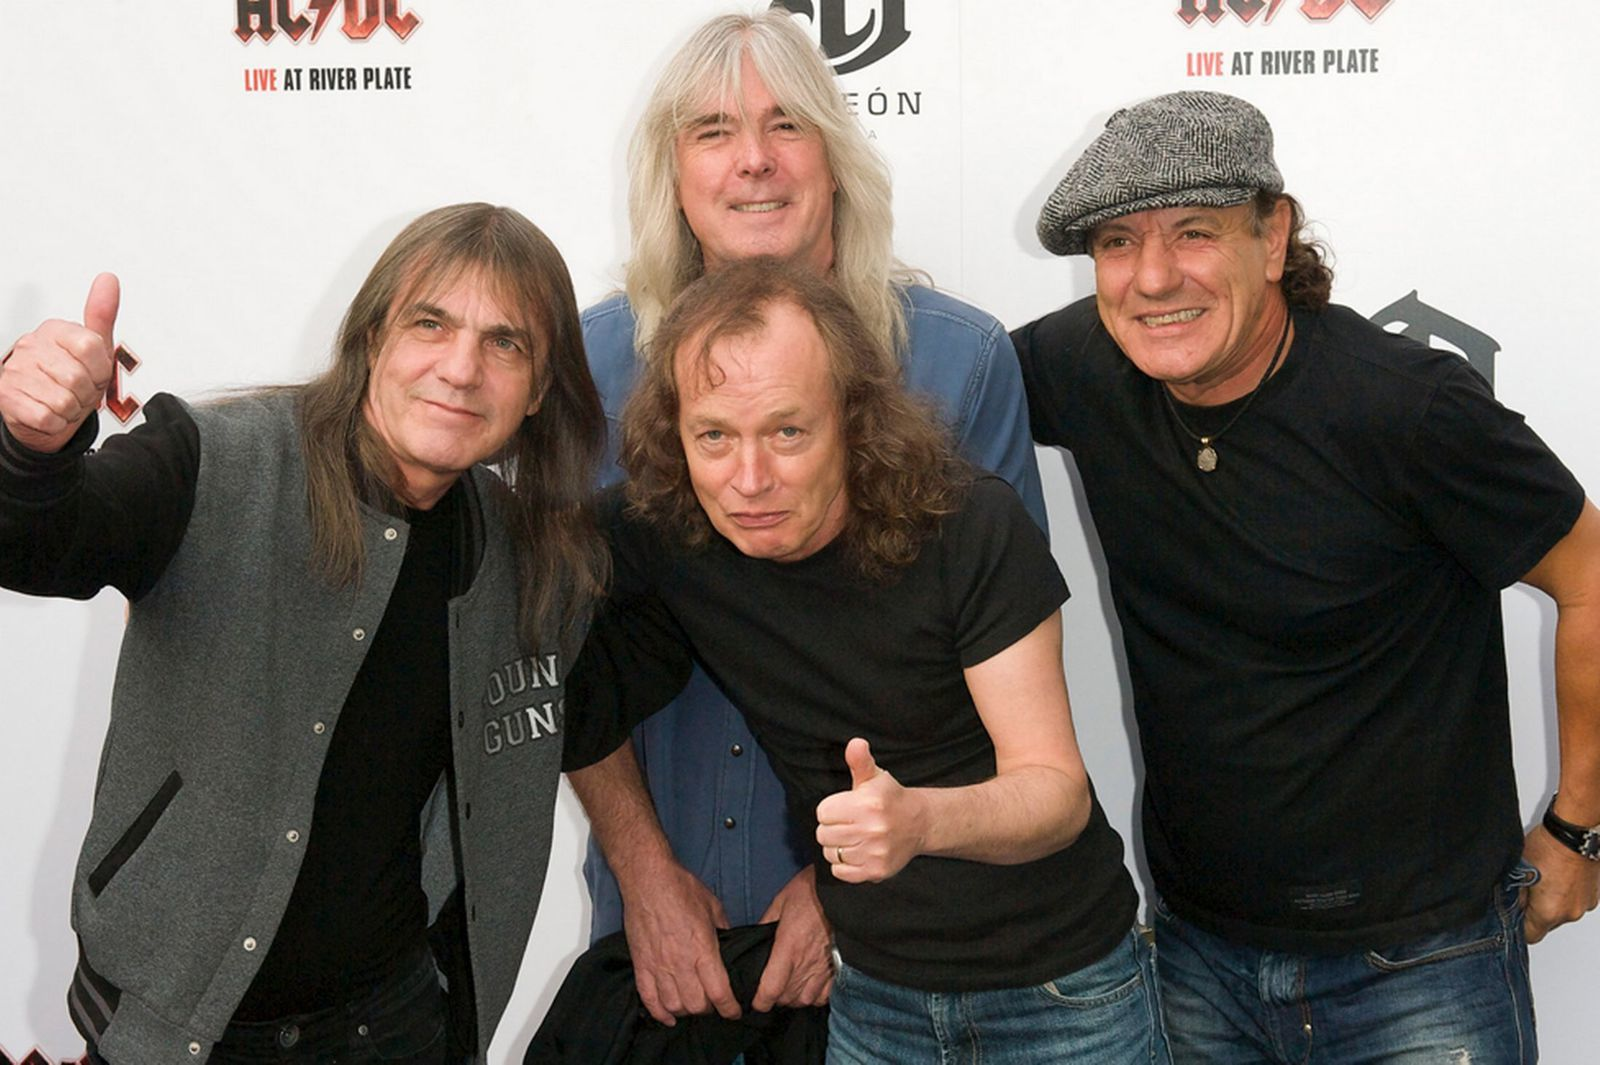 2011: Exclusive World Premiere Of AC DC Live At River Plate Presented By DeLeon Tequila at the HMV Apolo on May 6, in London, England.